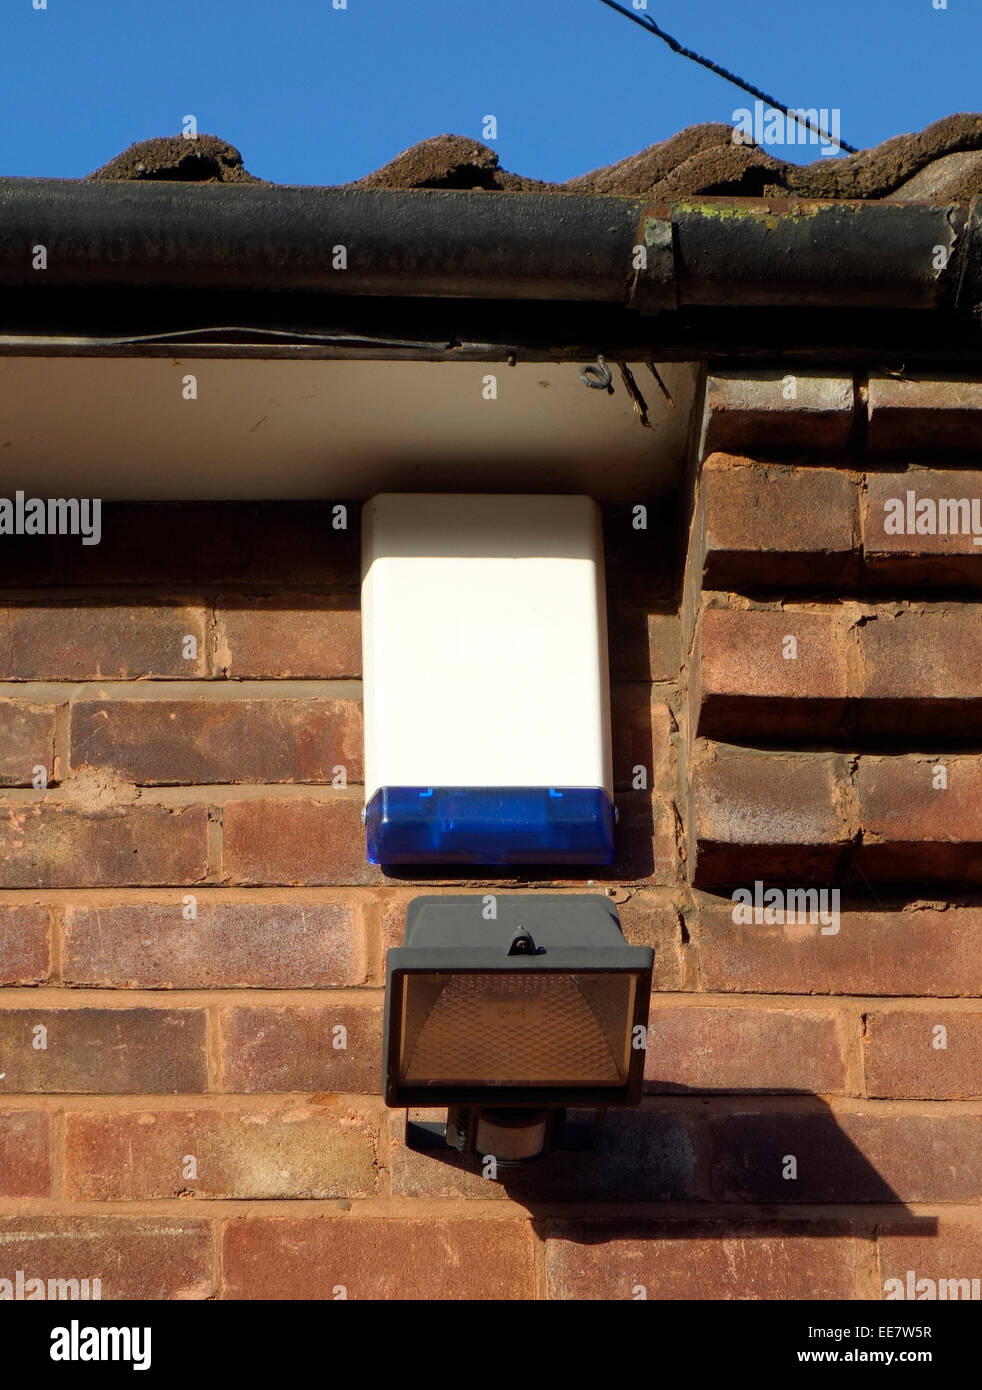 House Alarm Box and Halogen Security Lighting on an Exterior House Wall, UK PROPERTY RELEASED Stock Photo